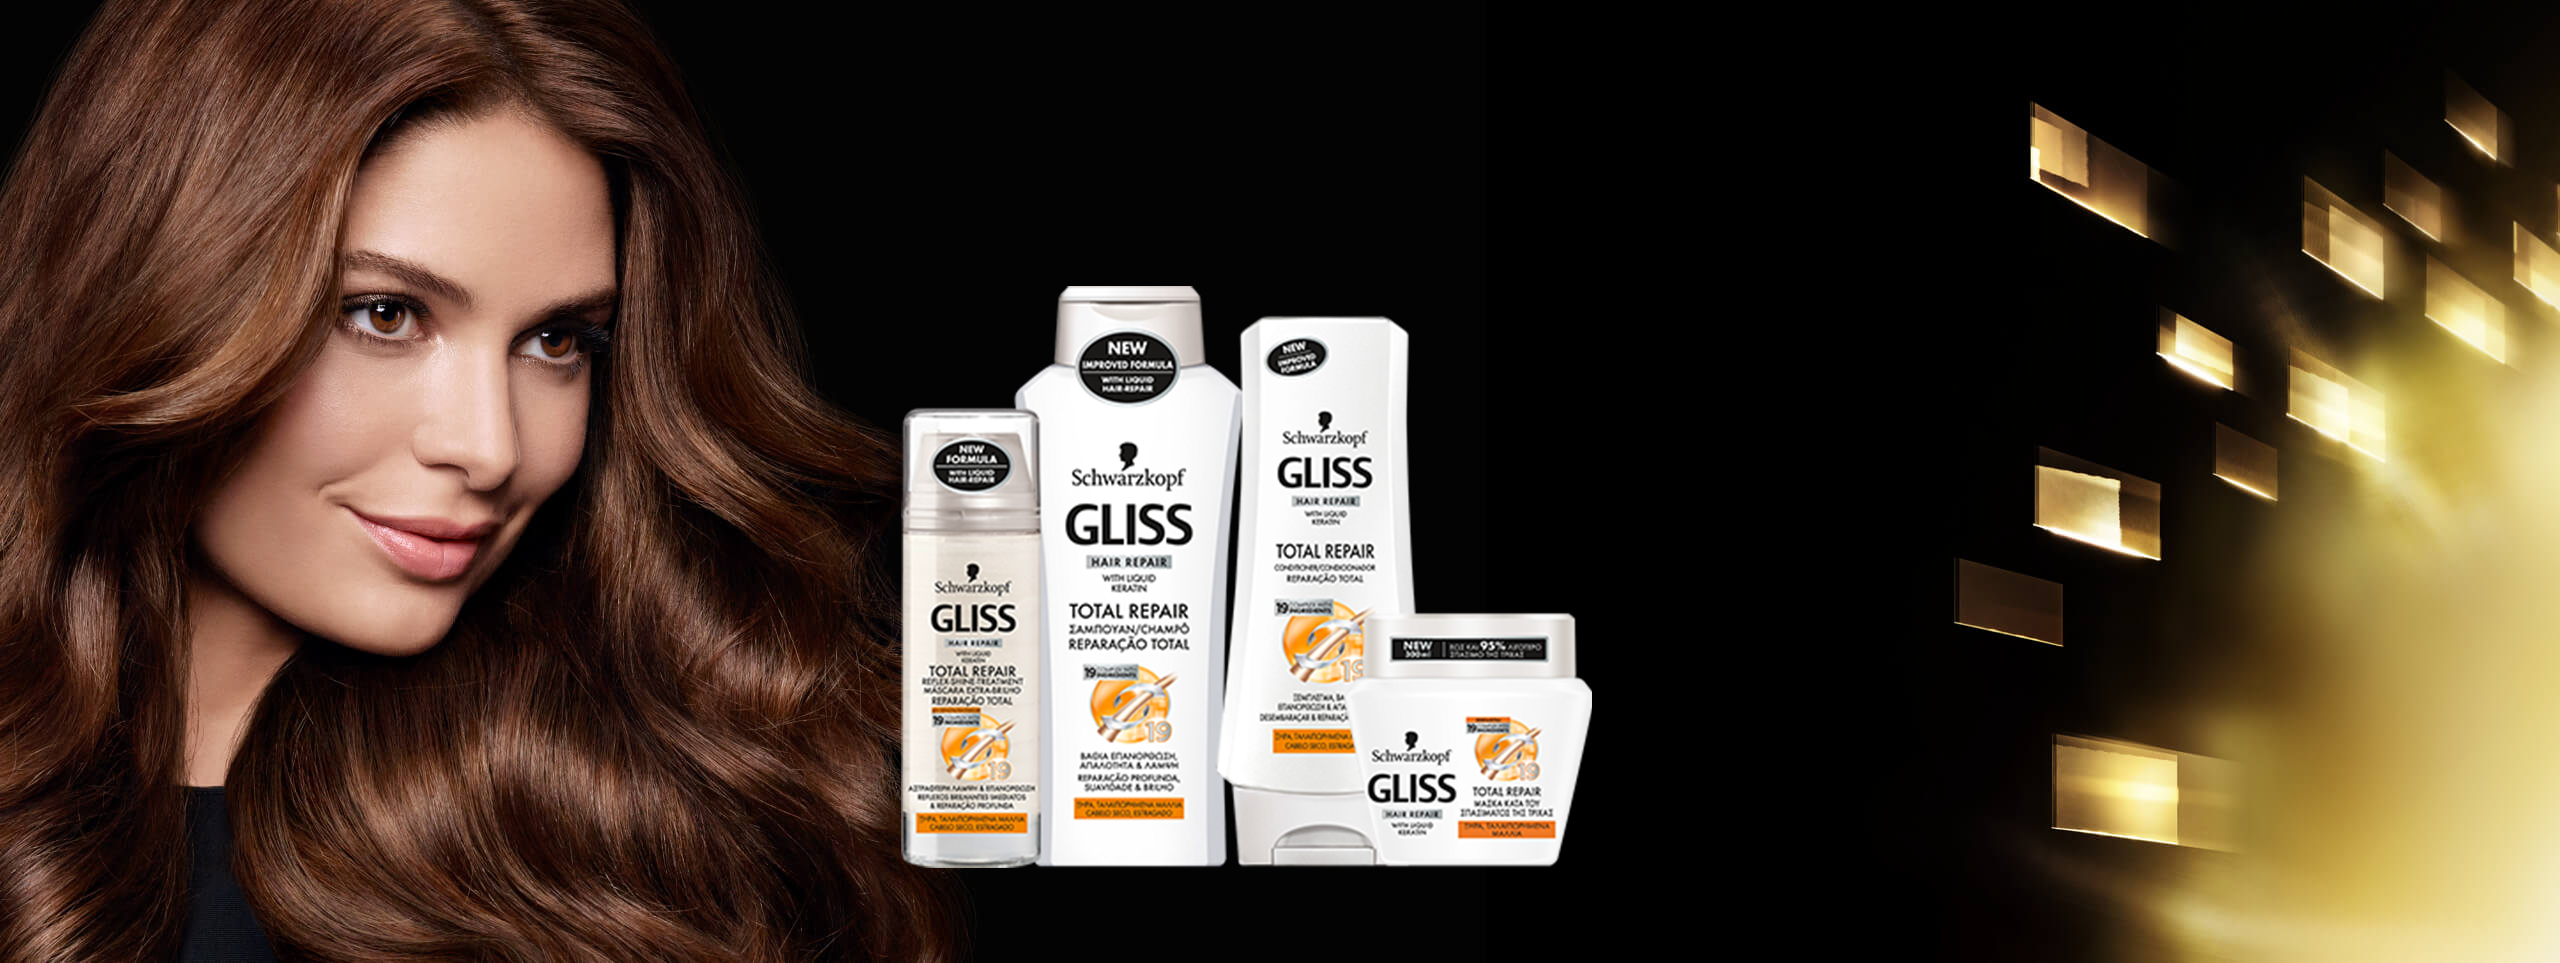 gliss_gr_total_repair_2560x963_prod